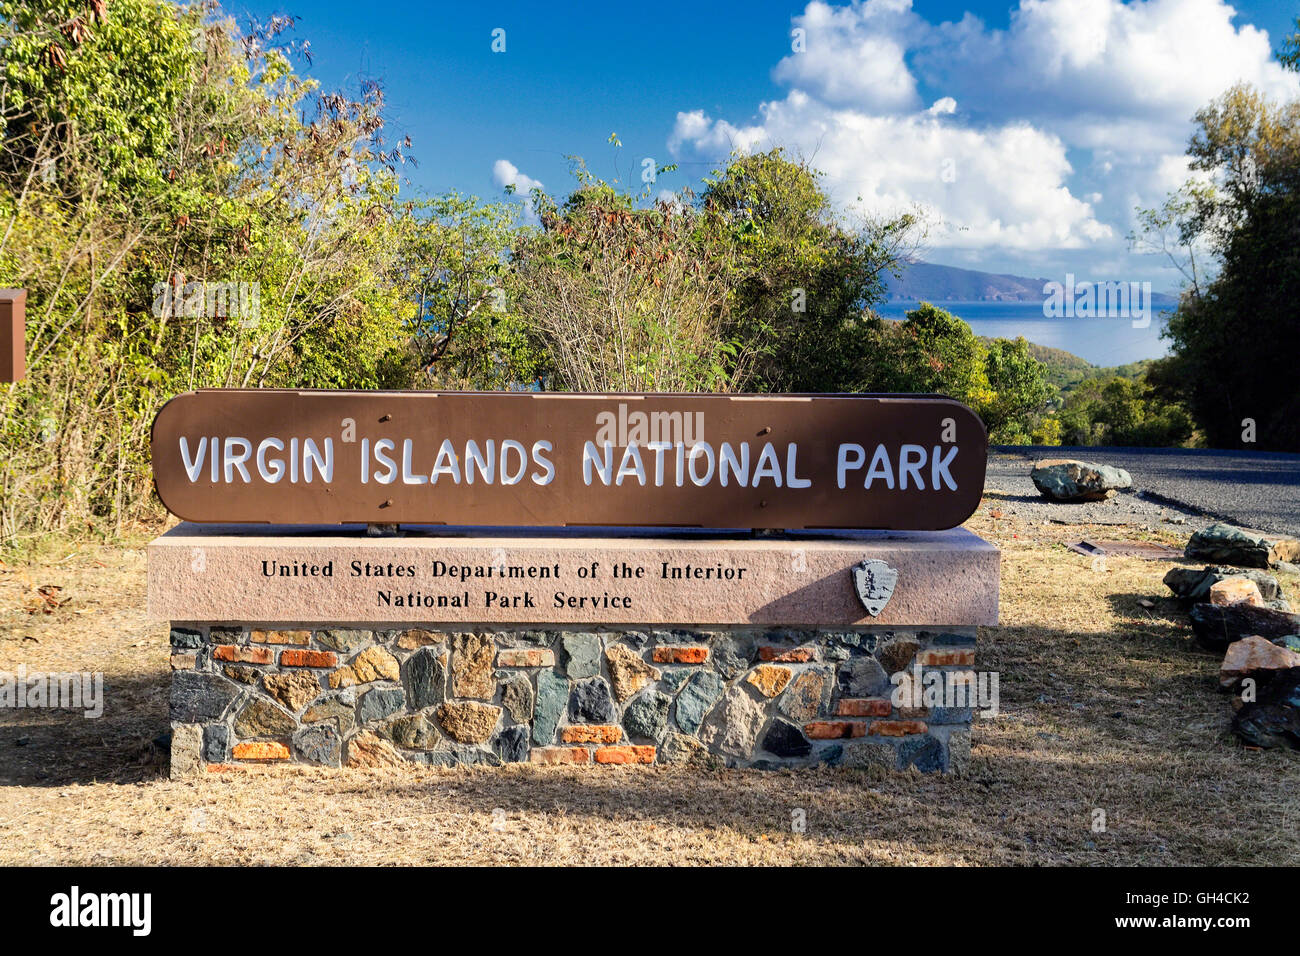 Us virgin islands stock photos us virgin islands stock images entrance sign of the virgin islands national park st john us virgin islands sciox Choice Image